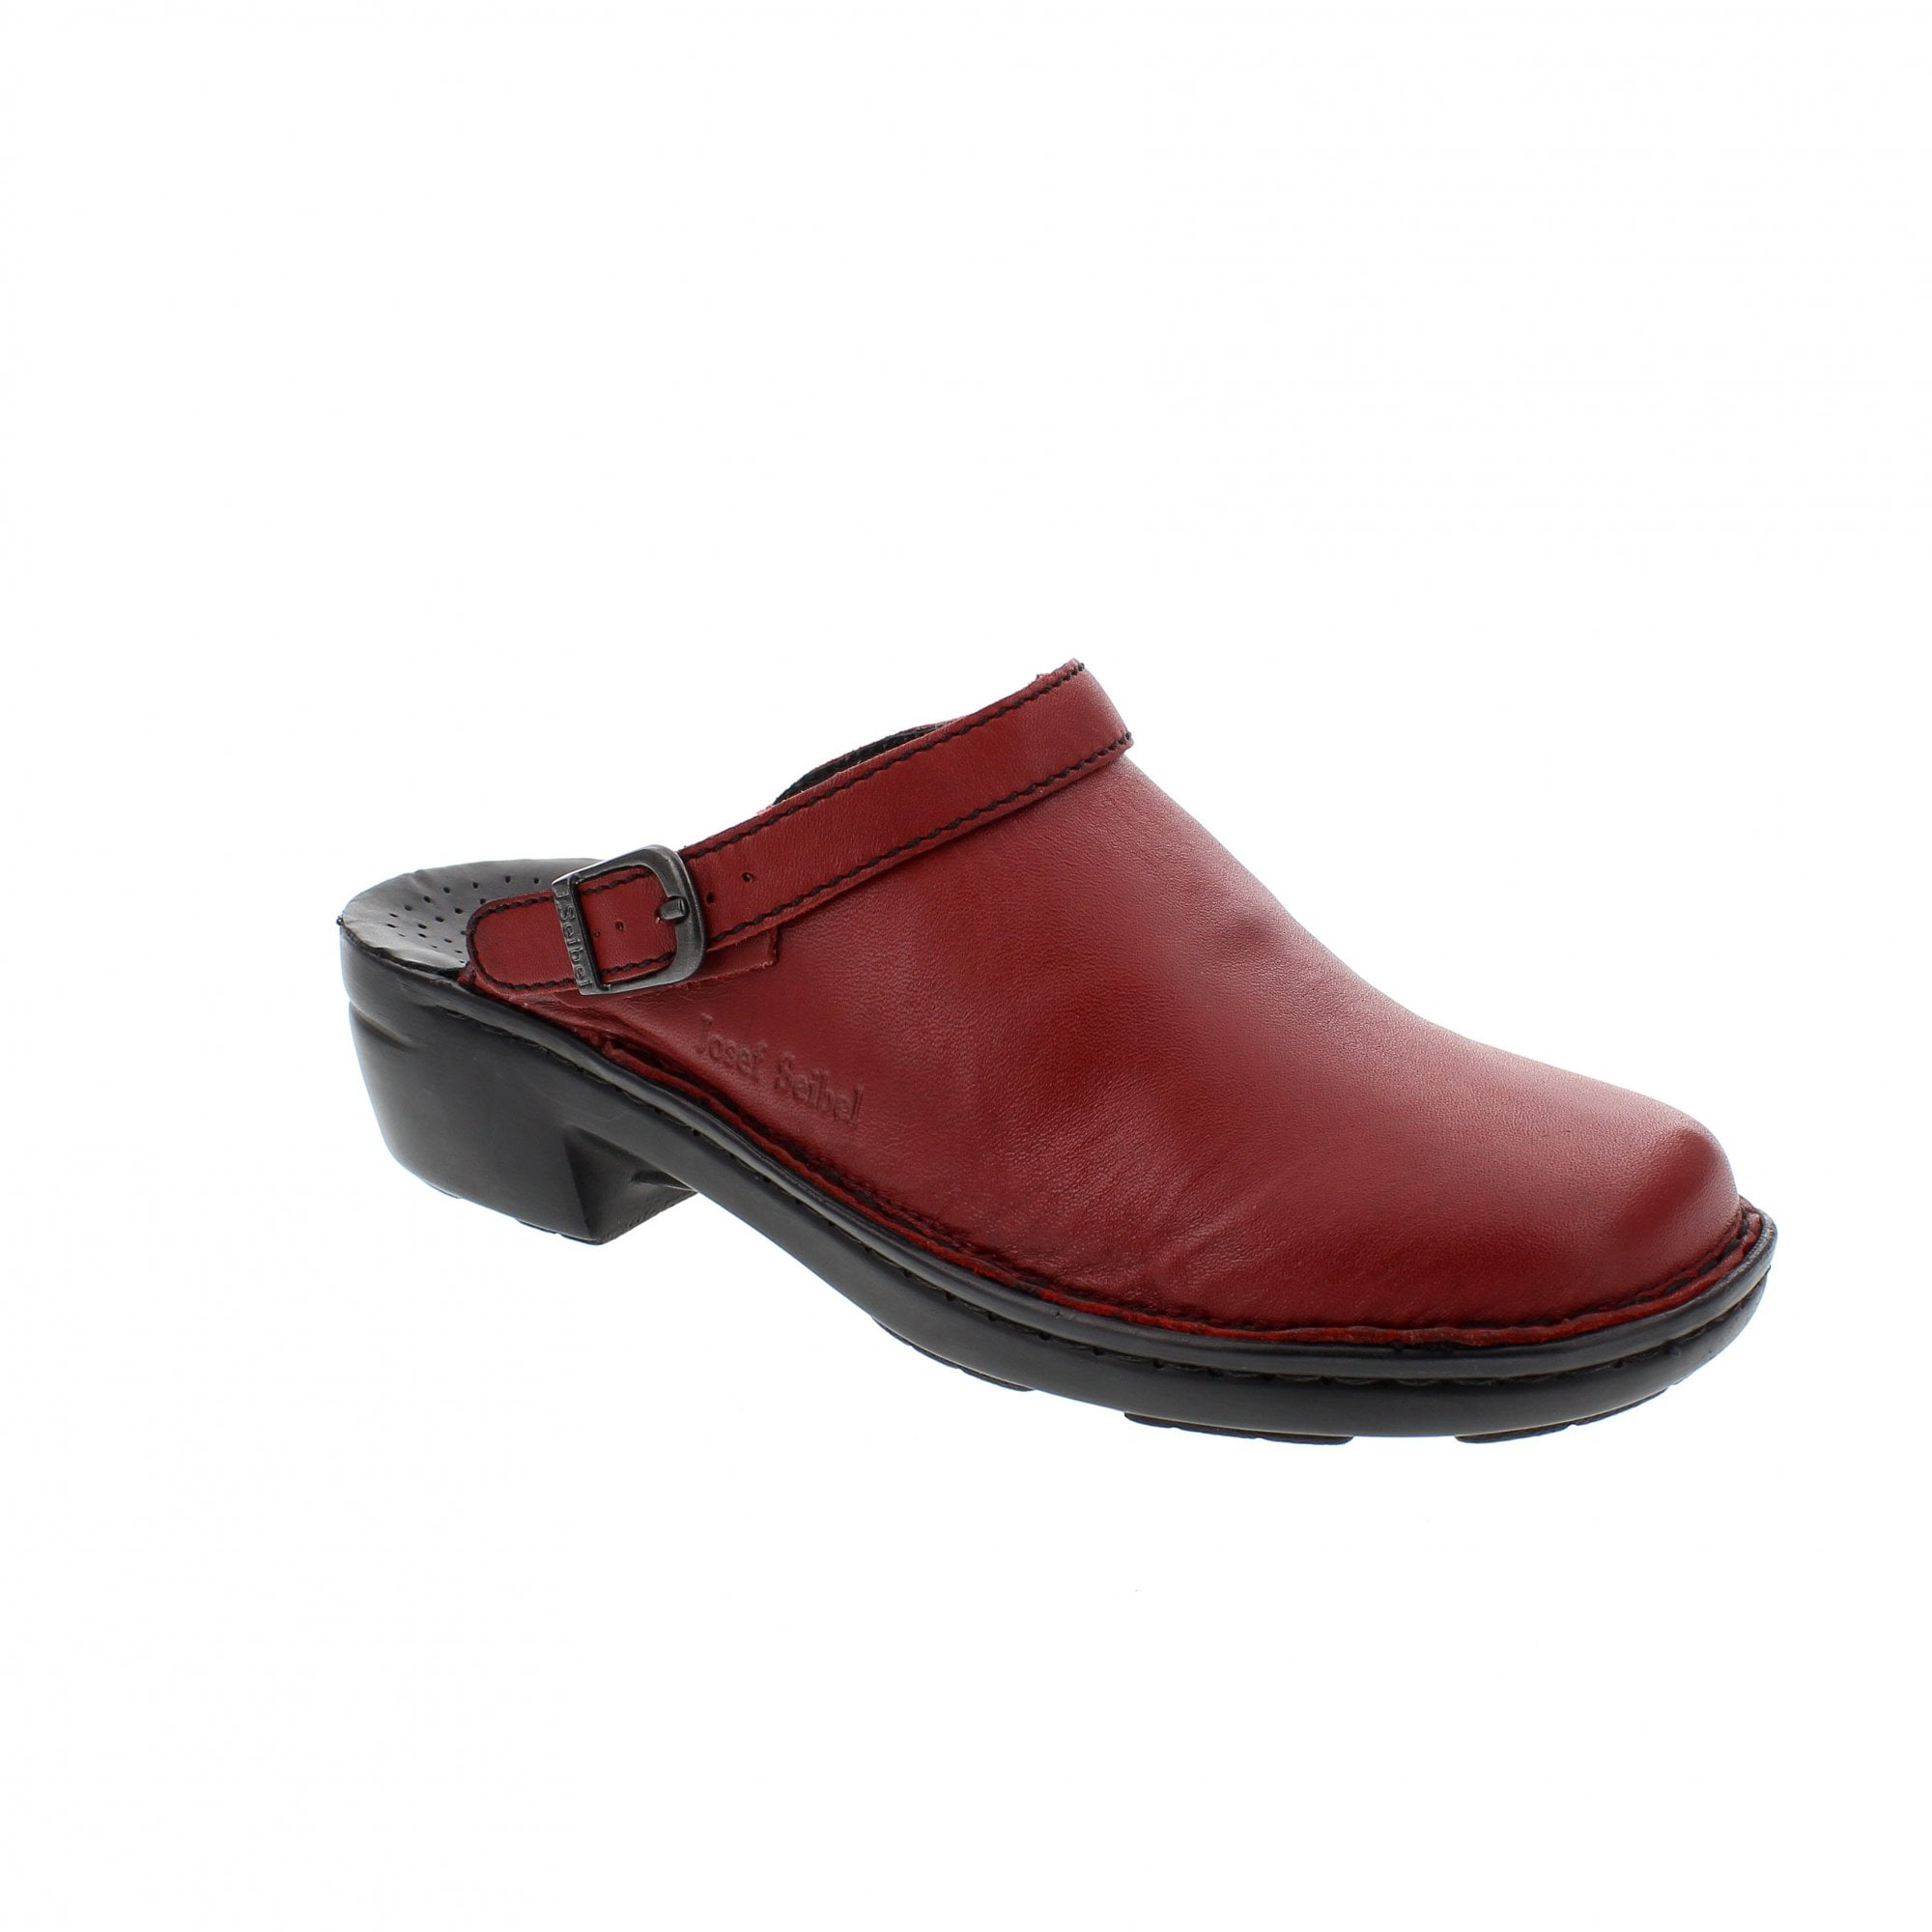 Berwick upon Tweed-Lime Shoe Co-Ladies-Josef Seibel-clogs-Red-Slip on-buckle-non slip